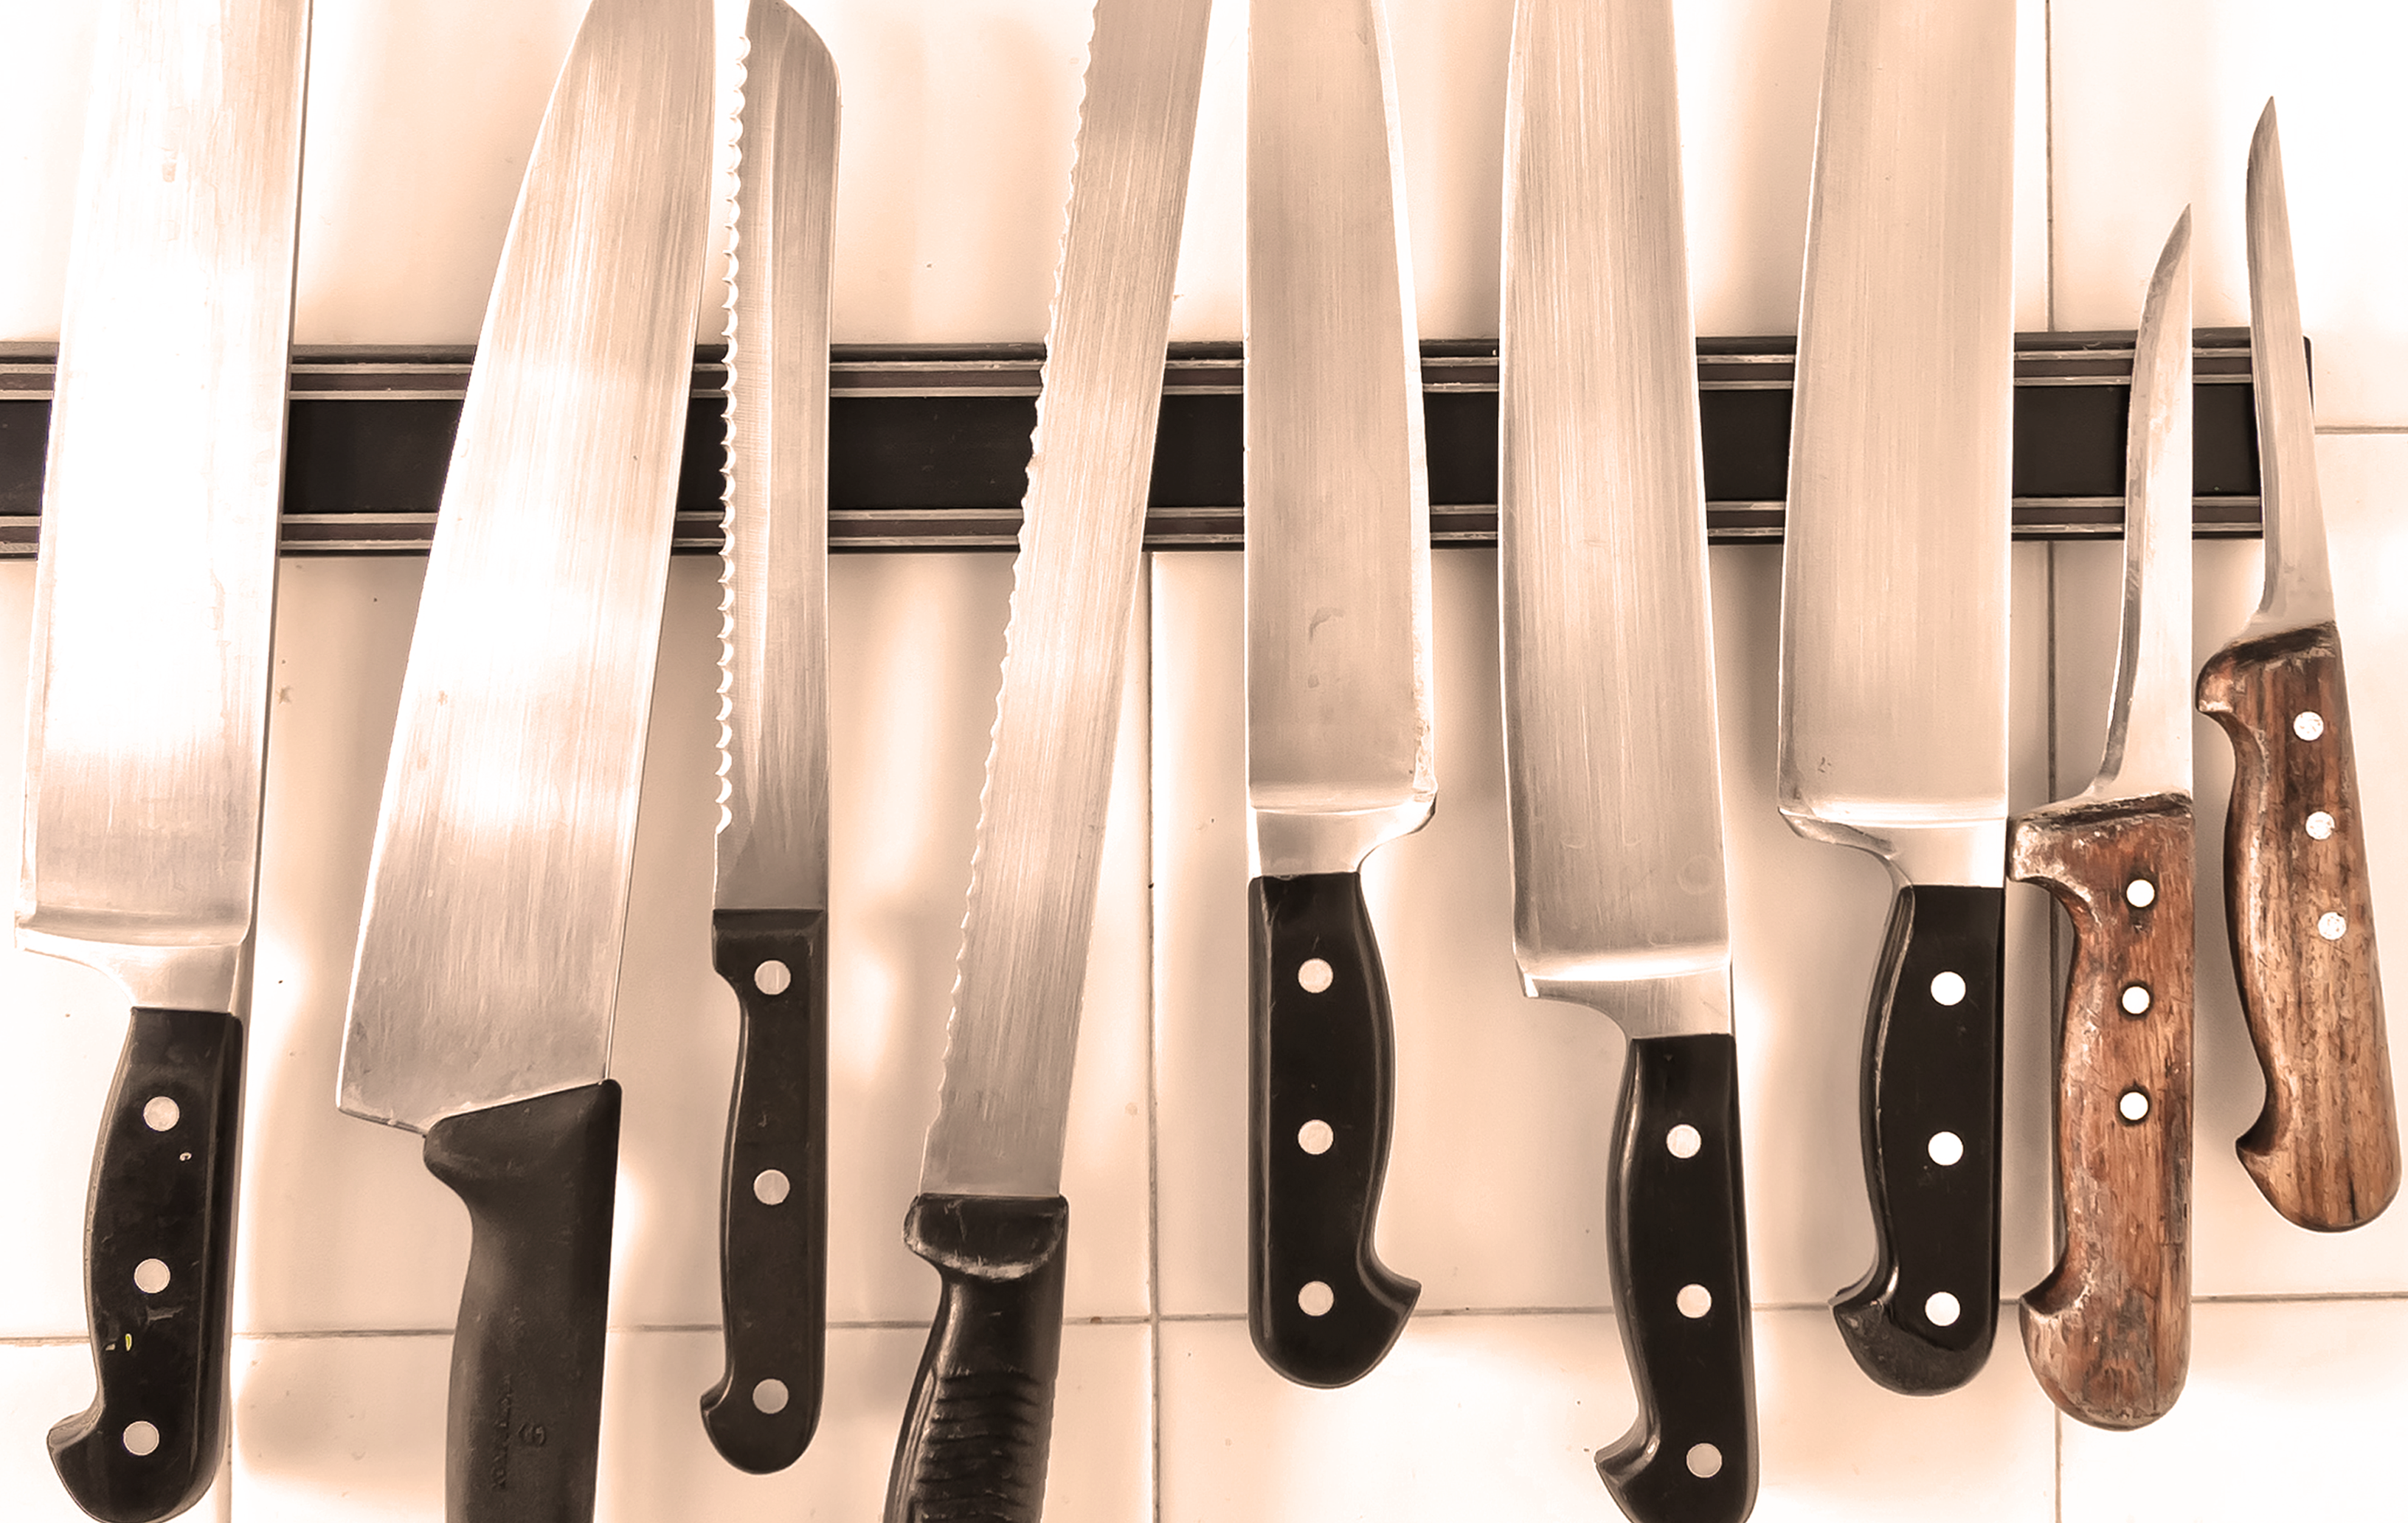 Chef S Knives Changed My Life Keith A Spencer Medium